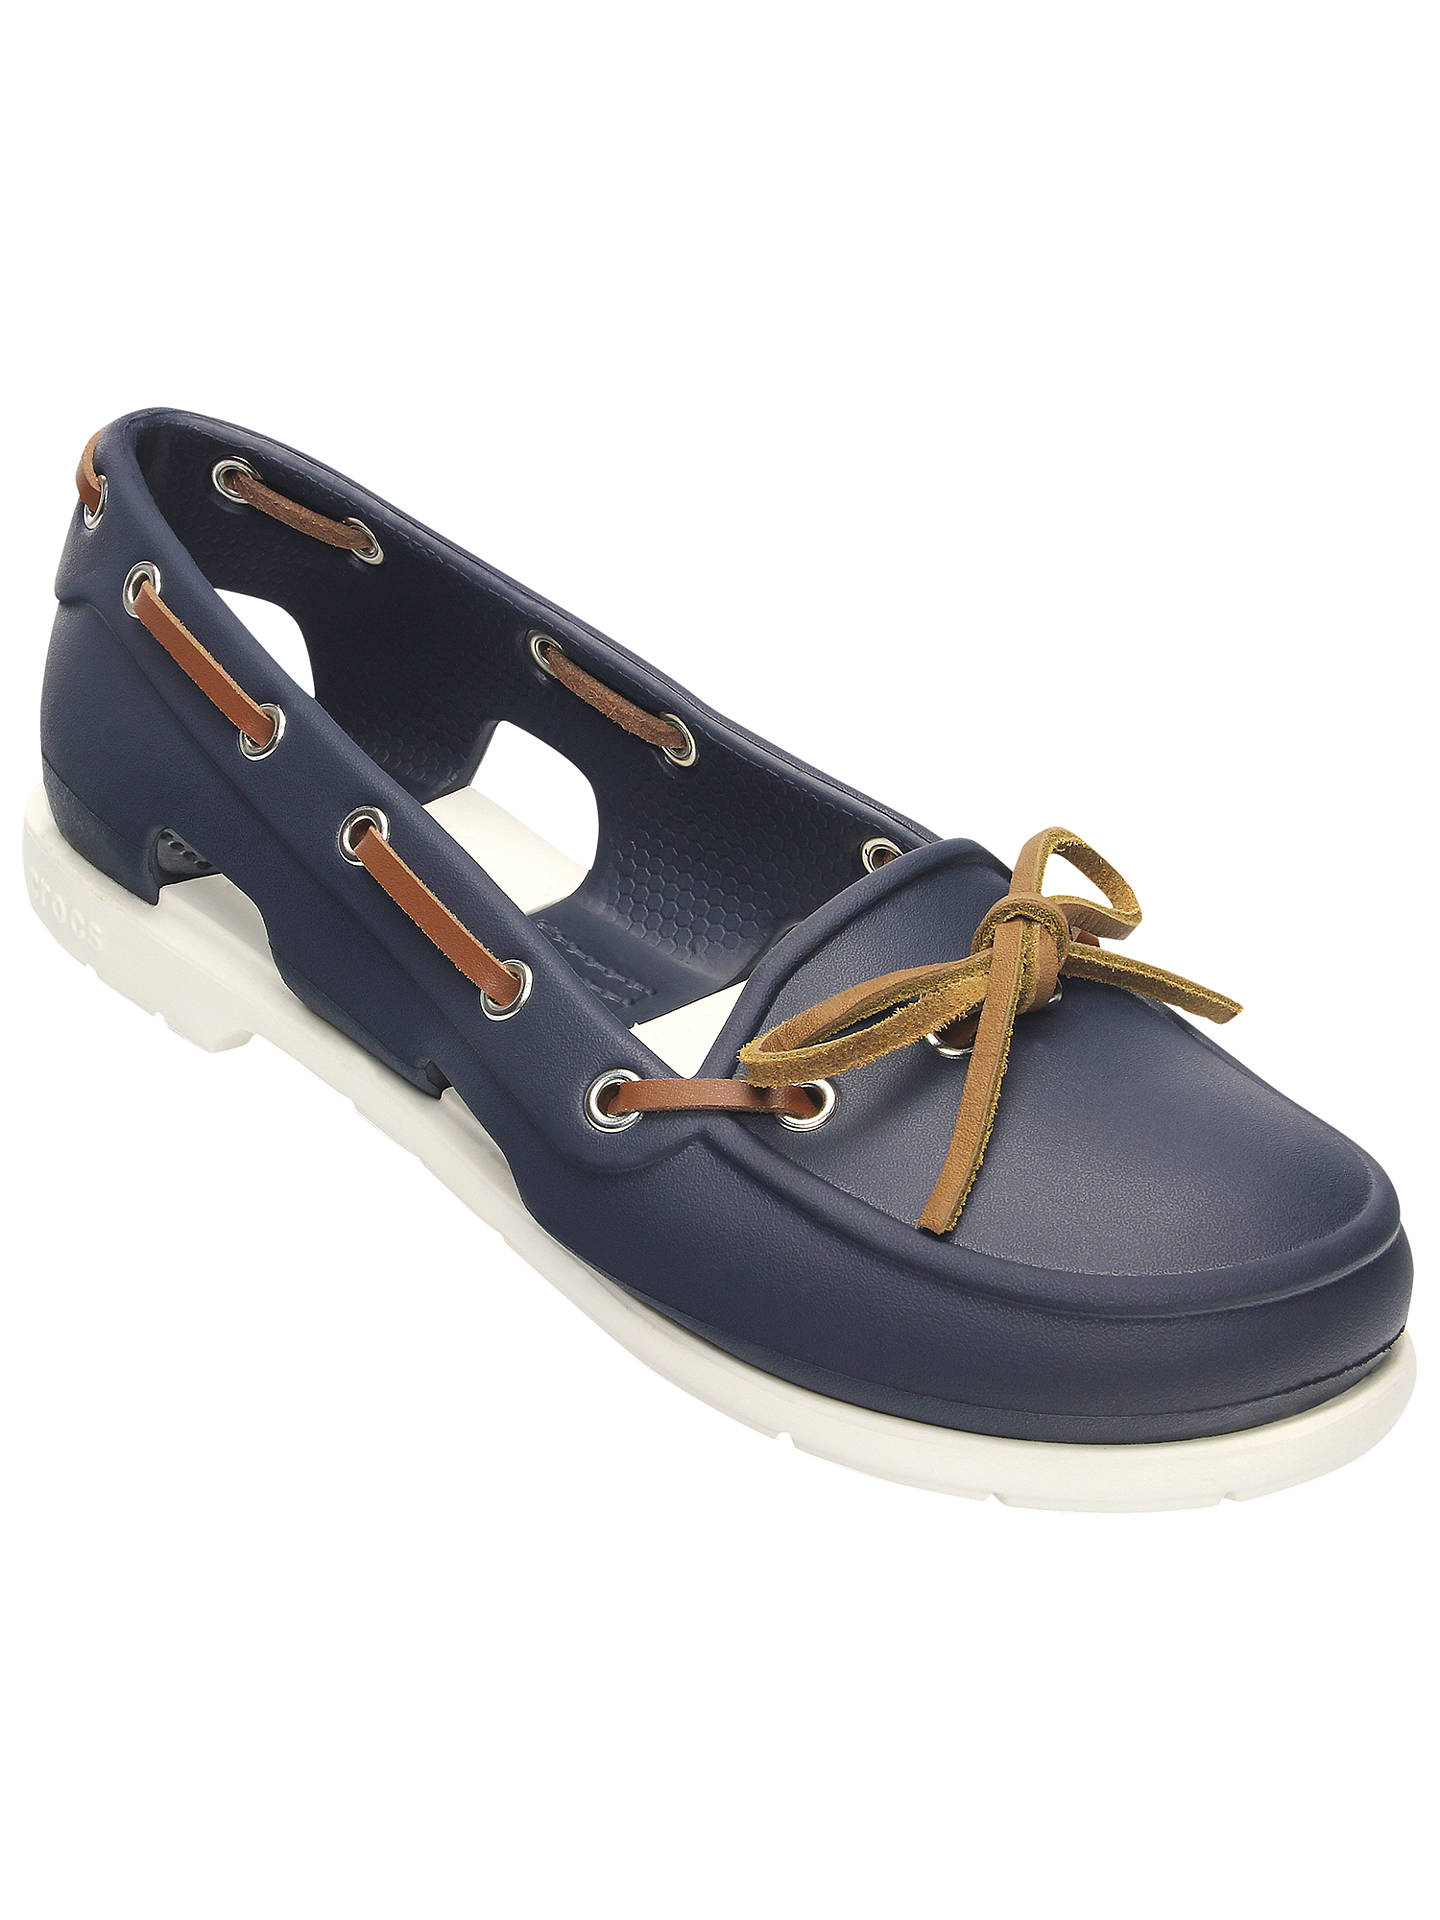 24e3995ae Buy Crocs Beach Line Women s Boat Shoes